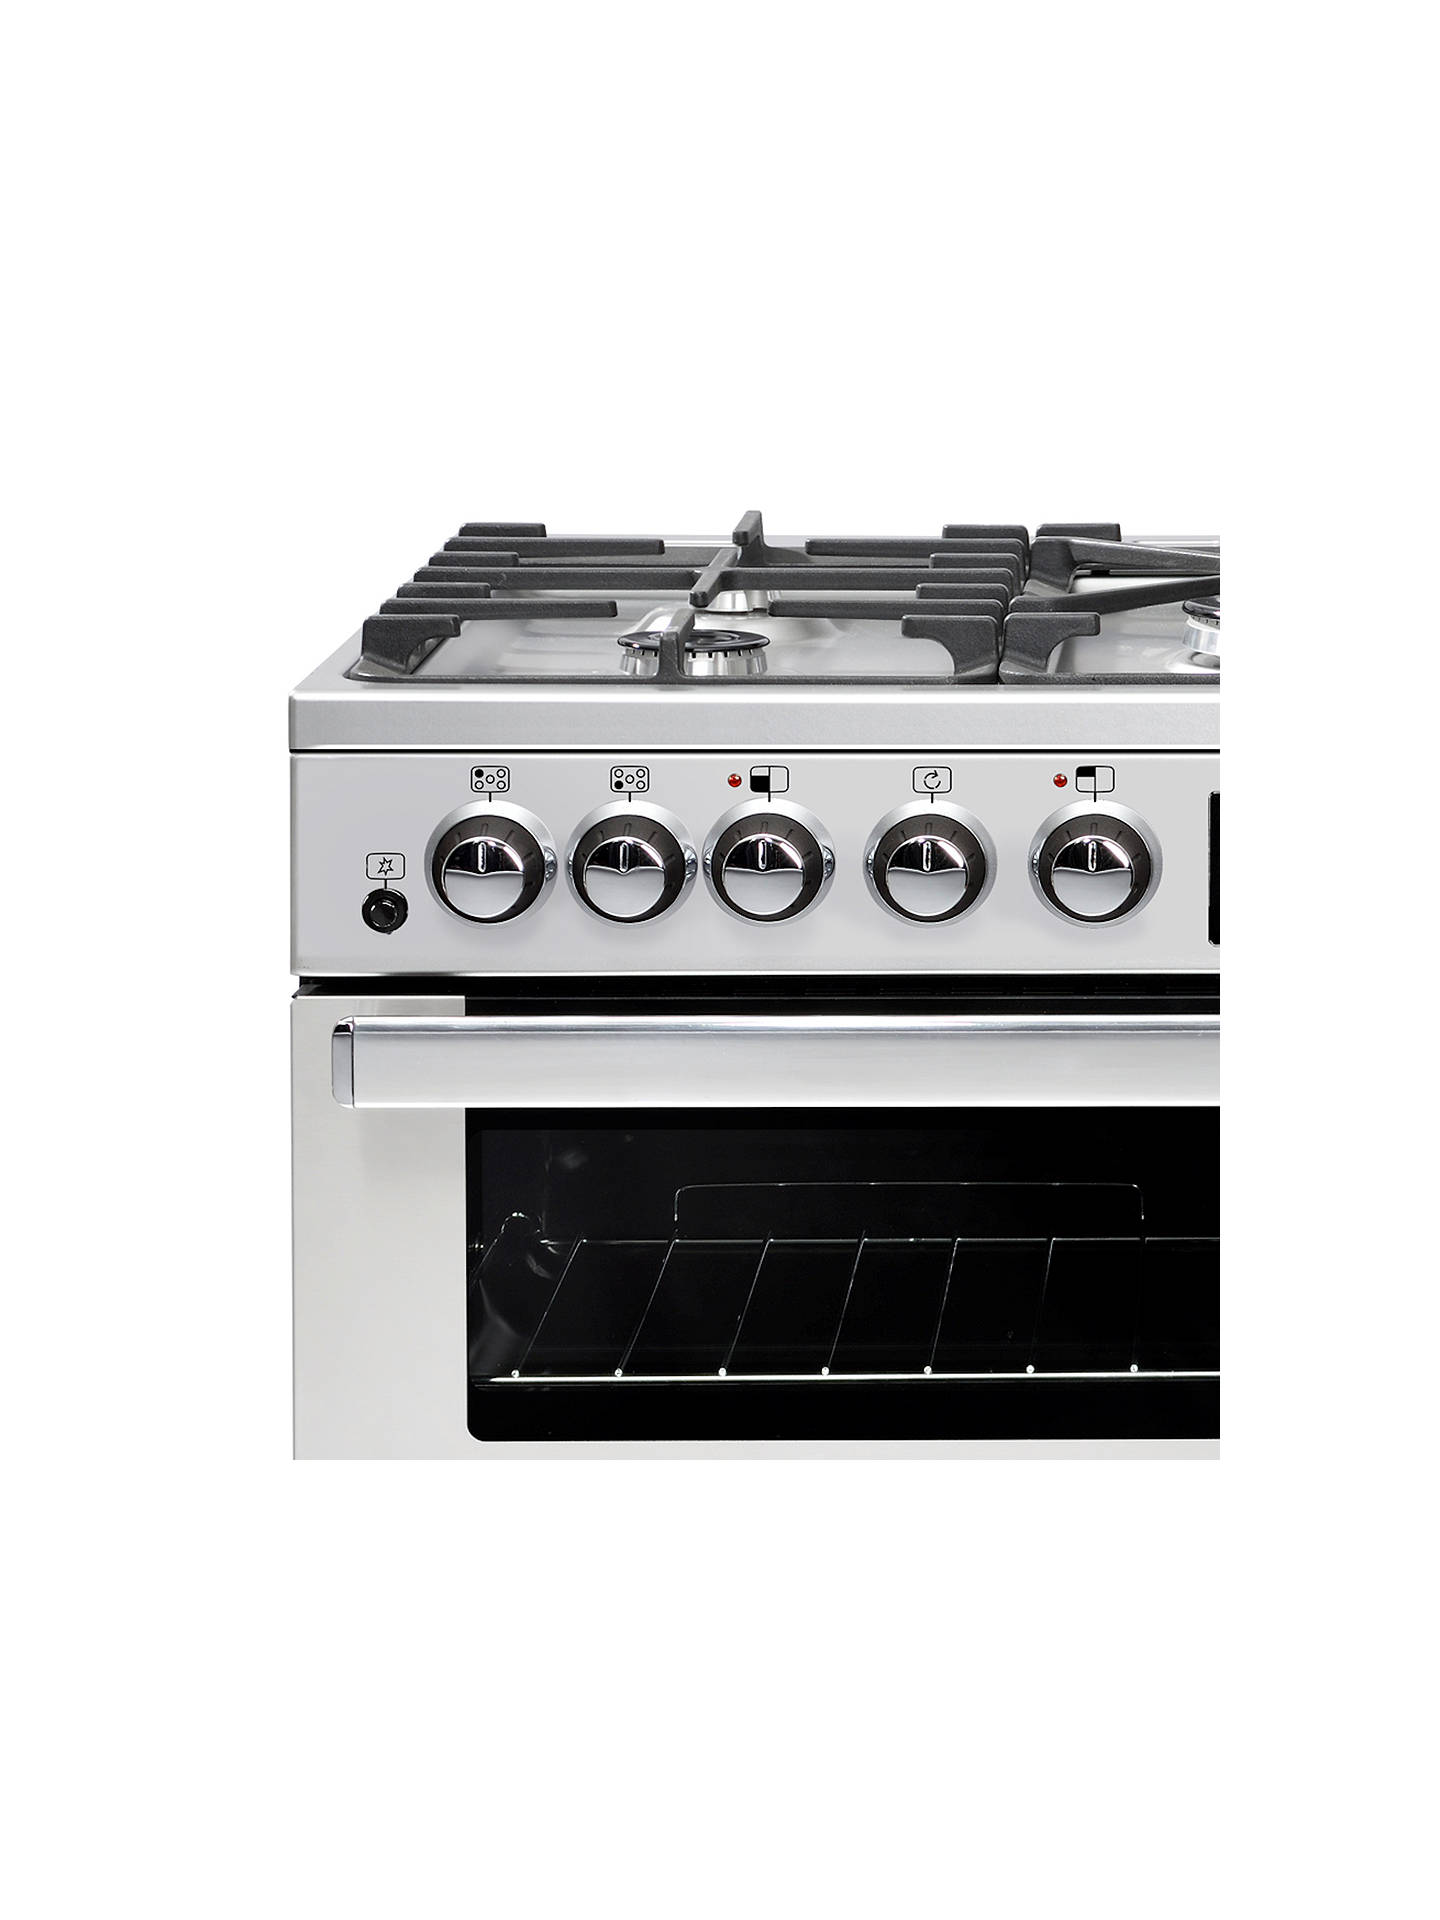 BuyBelling Cookcentre Deluxe 90DFT Dual Fuel Range Cooker, Stainless Steel Online at johnlewis.com